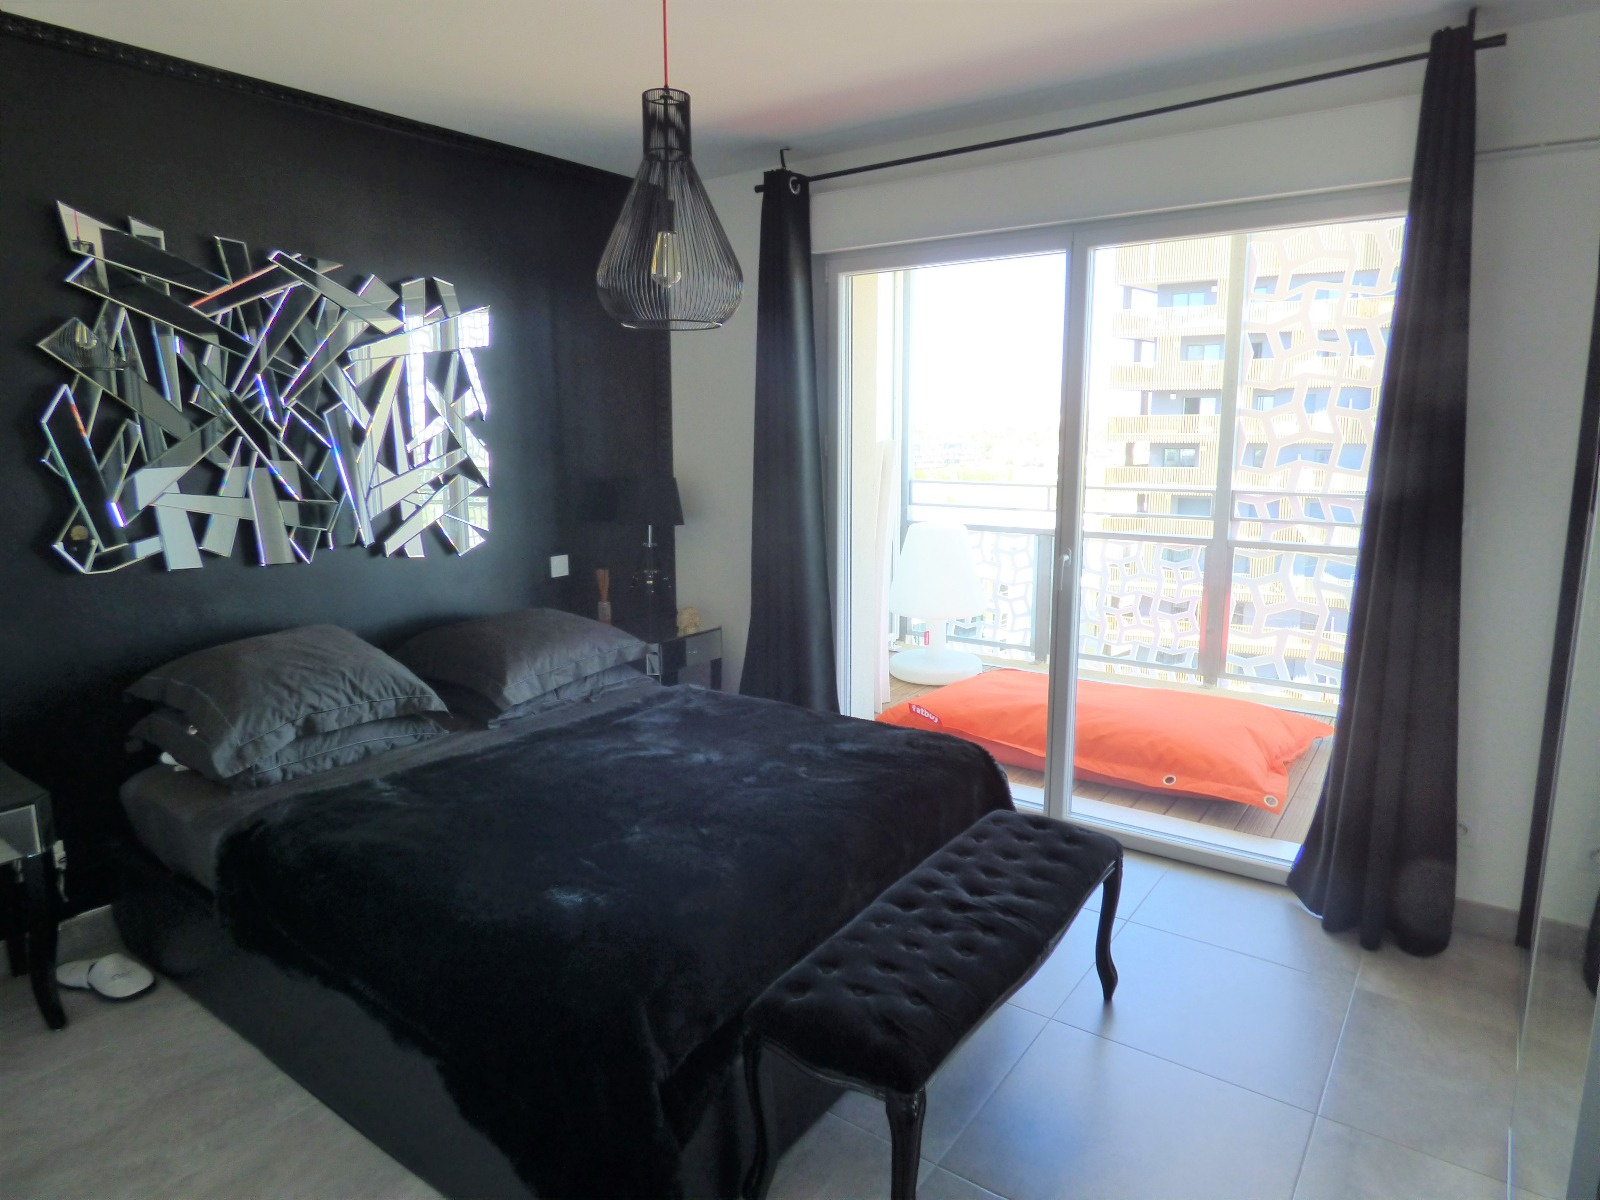 Vente grand appartement t2 montpellier port marianne - Location t2 montpellier port marianne ...